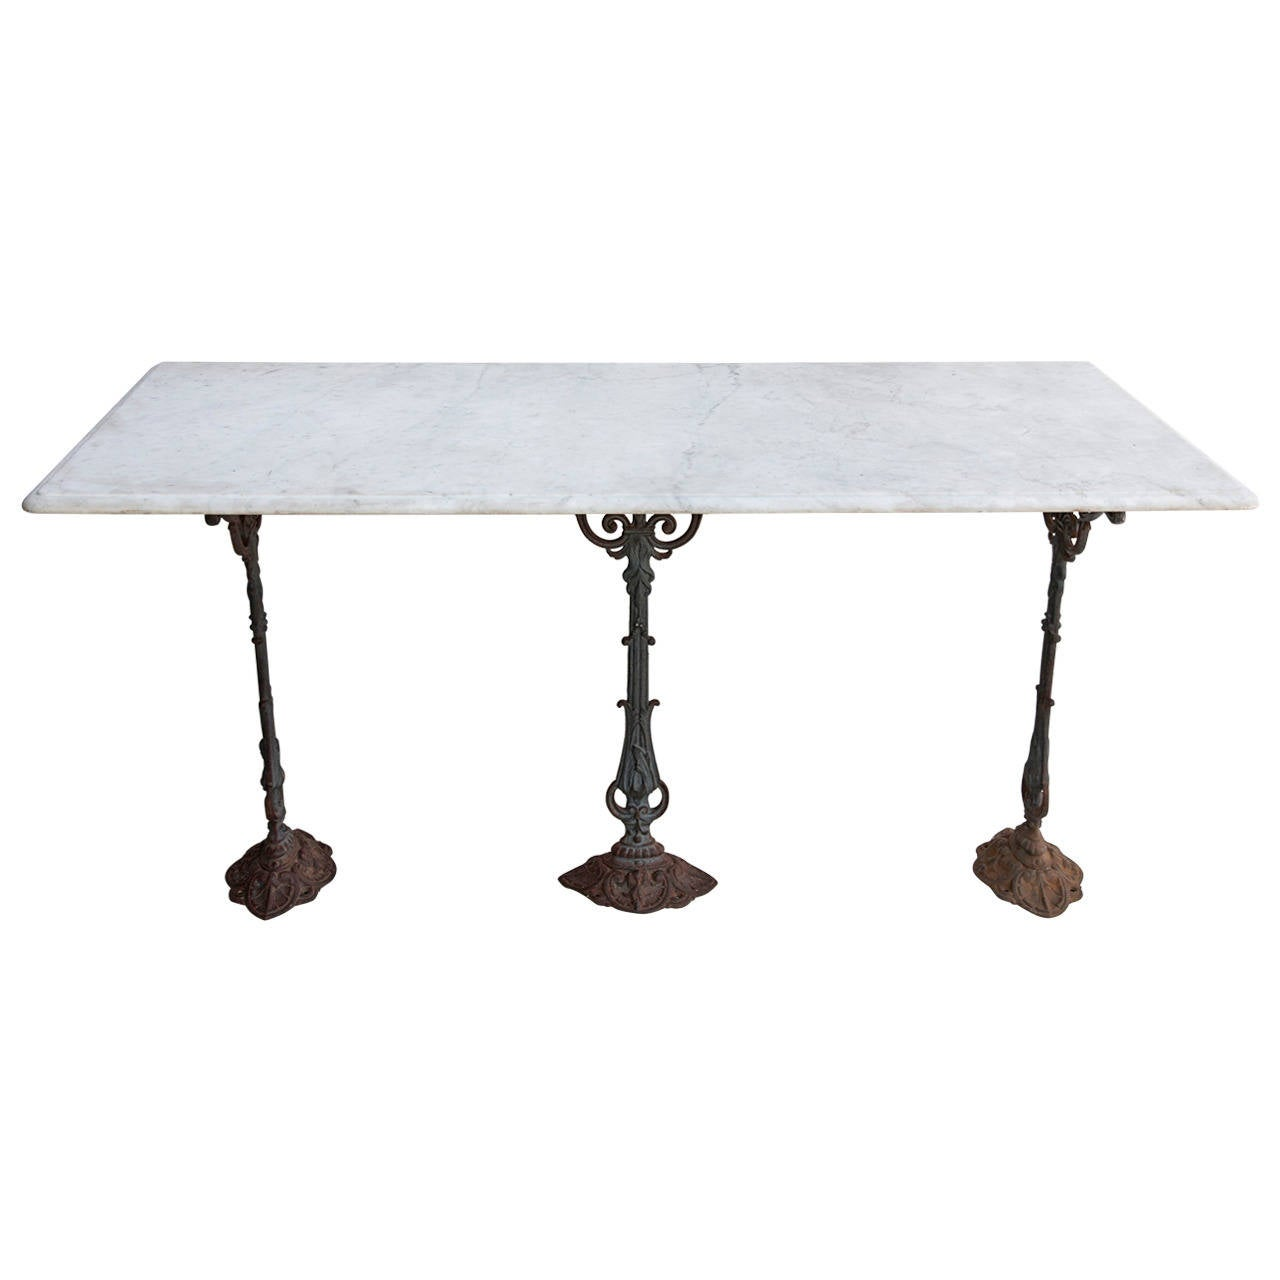 Carrara marble top paris bistro table or console with for Cast iron dining table